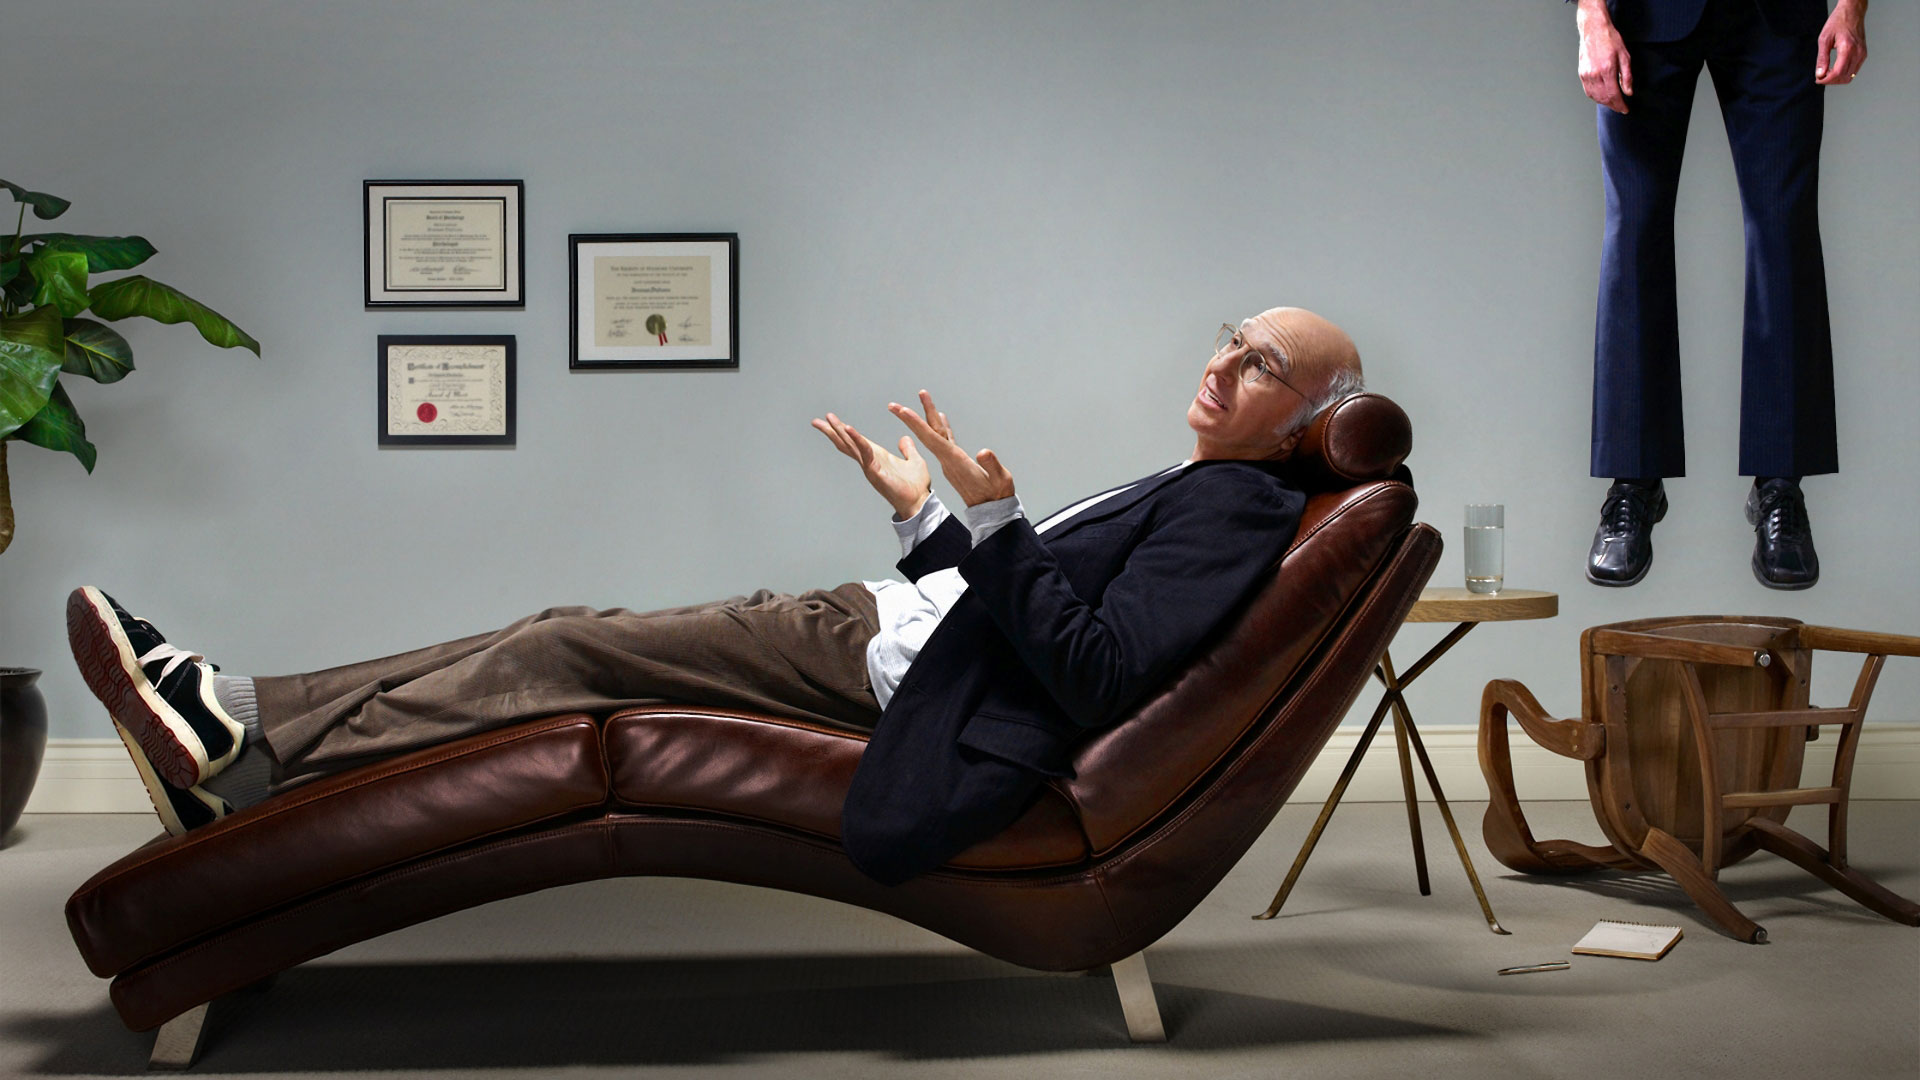 curb your enthusiasm - photo #20